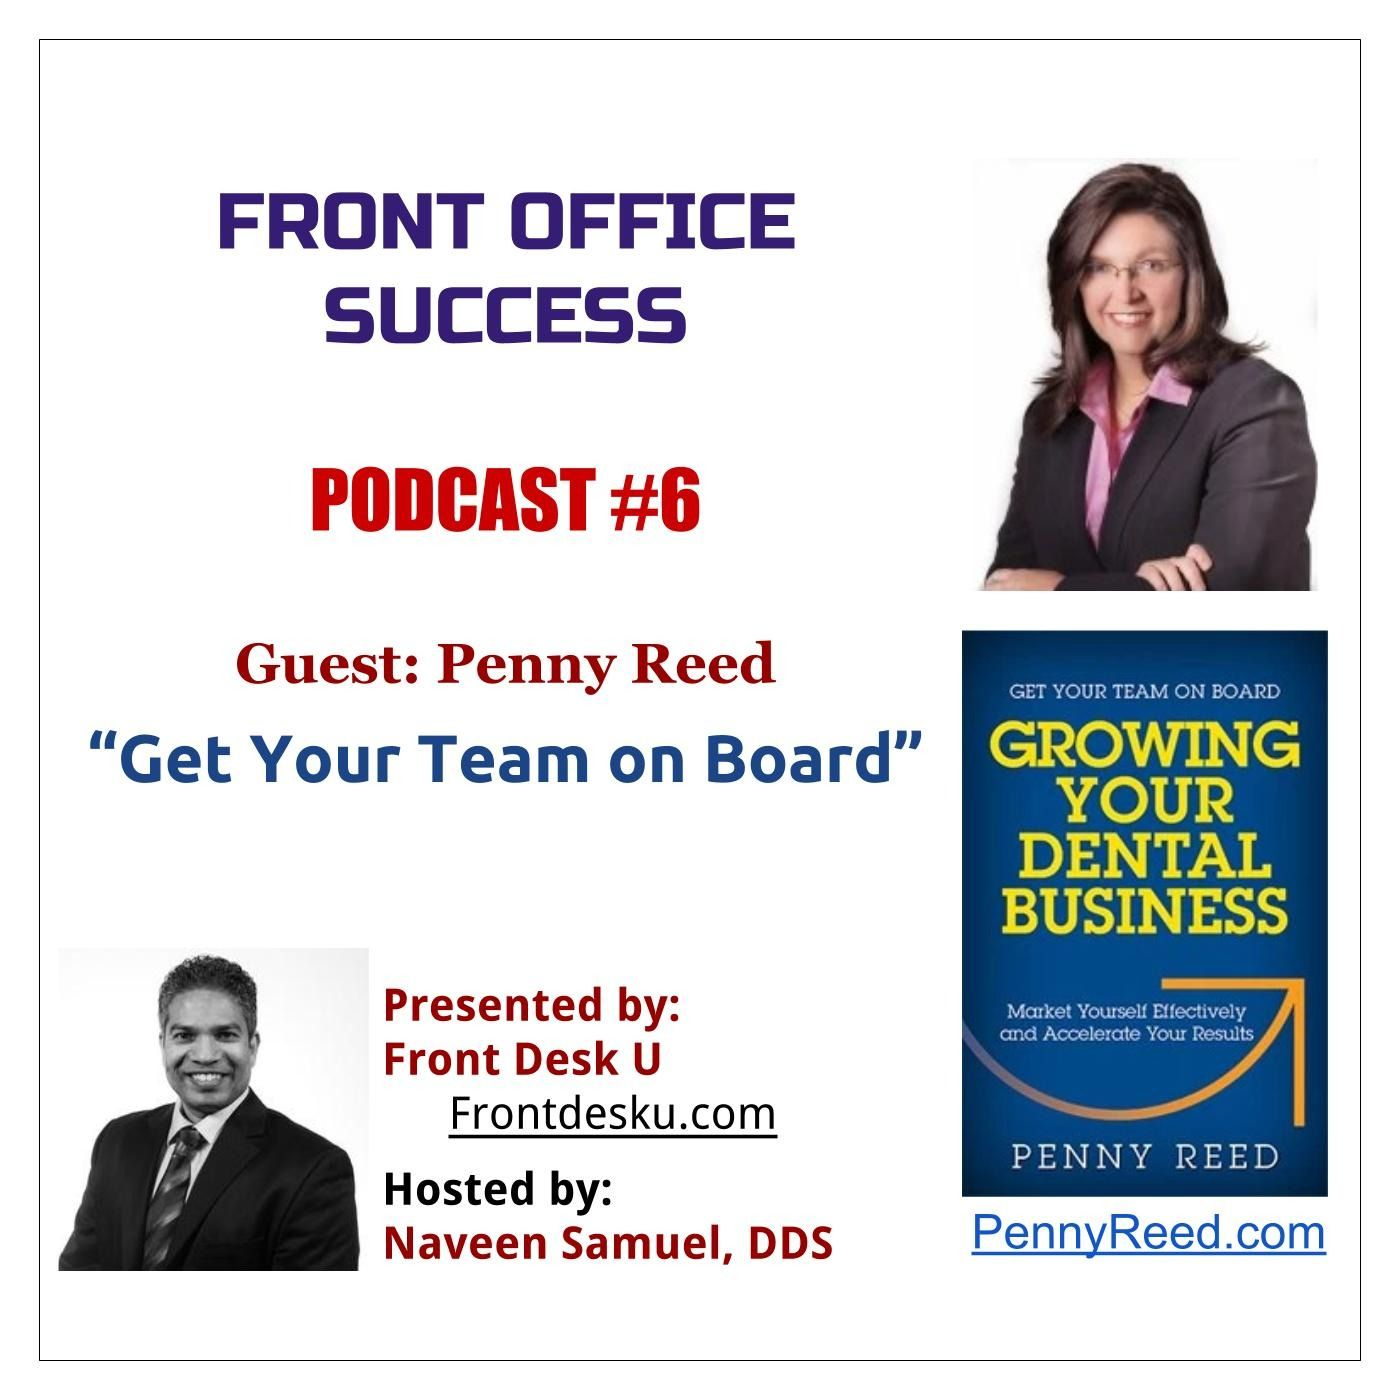 Front Office Success - Podcast #6 - Penny Reed